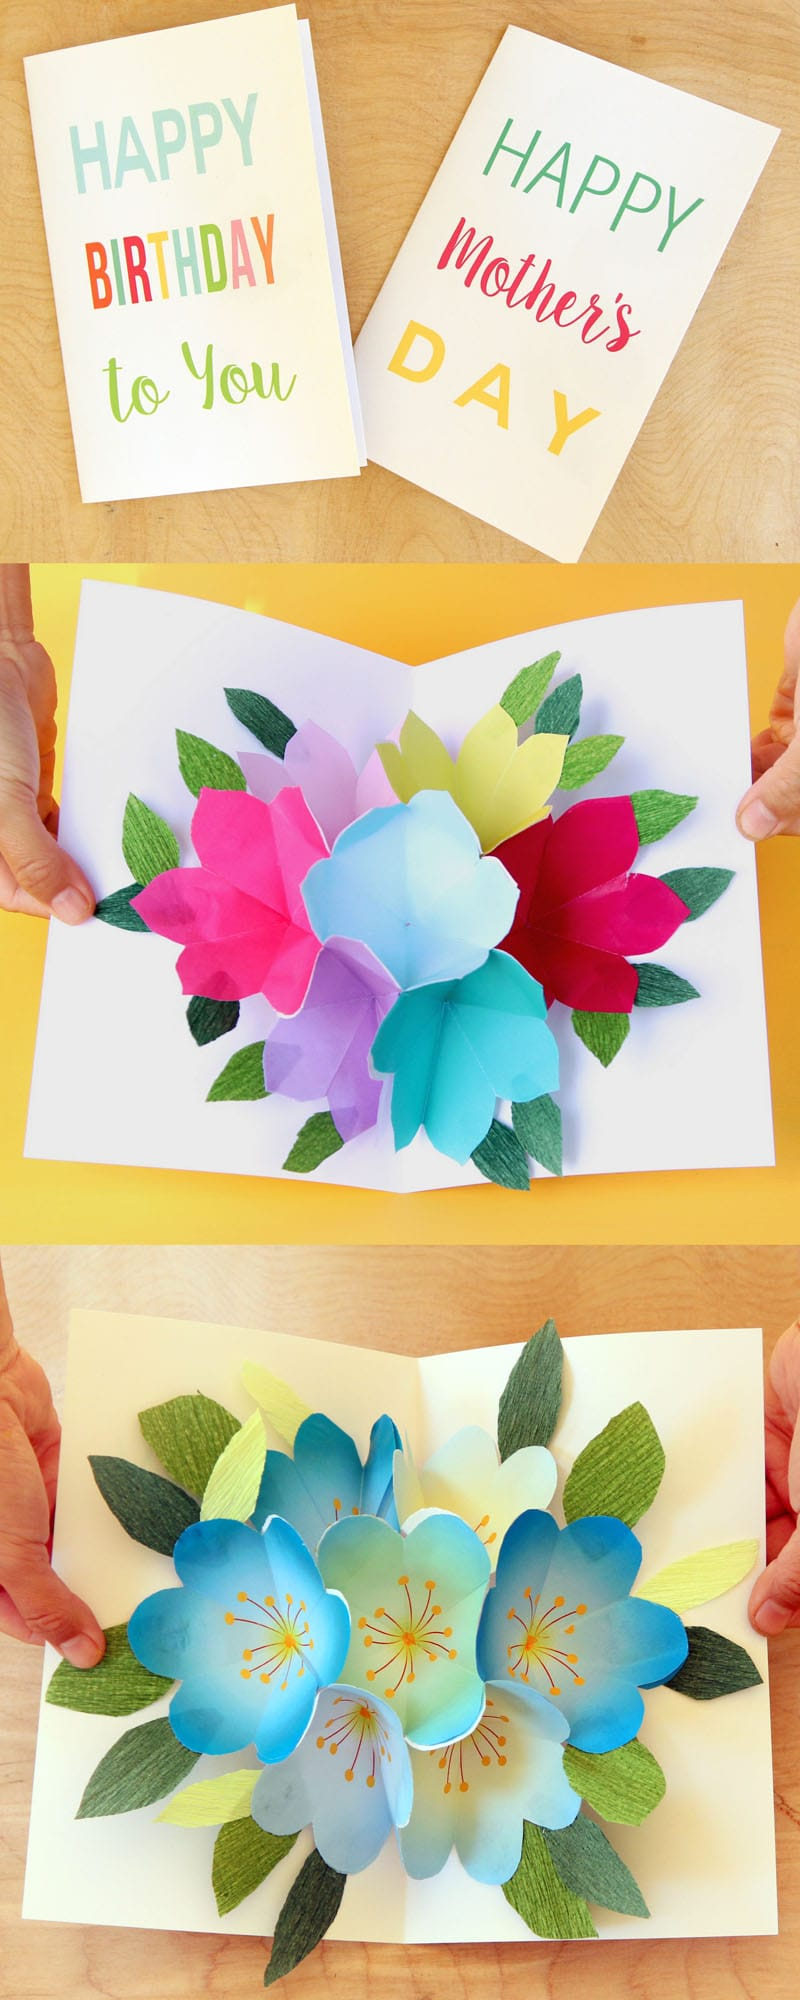 Free printable happy birthday card with pop up bouquet a piece of you can make this easy and free printable birthday card in less than an hour oh and the best part a big bouquet pops right out when your loved one opens bookmarktalkfo Choice Image